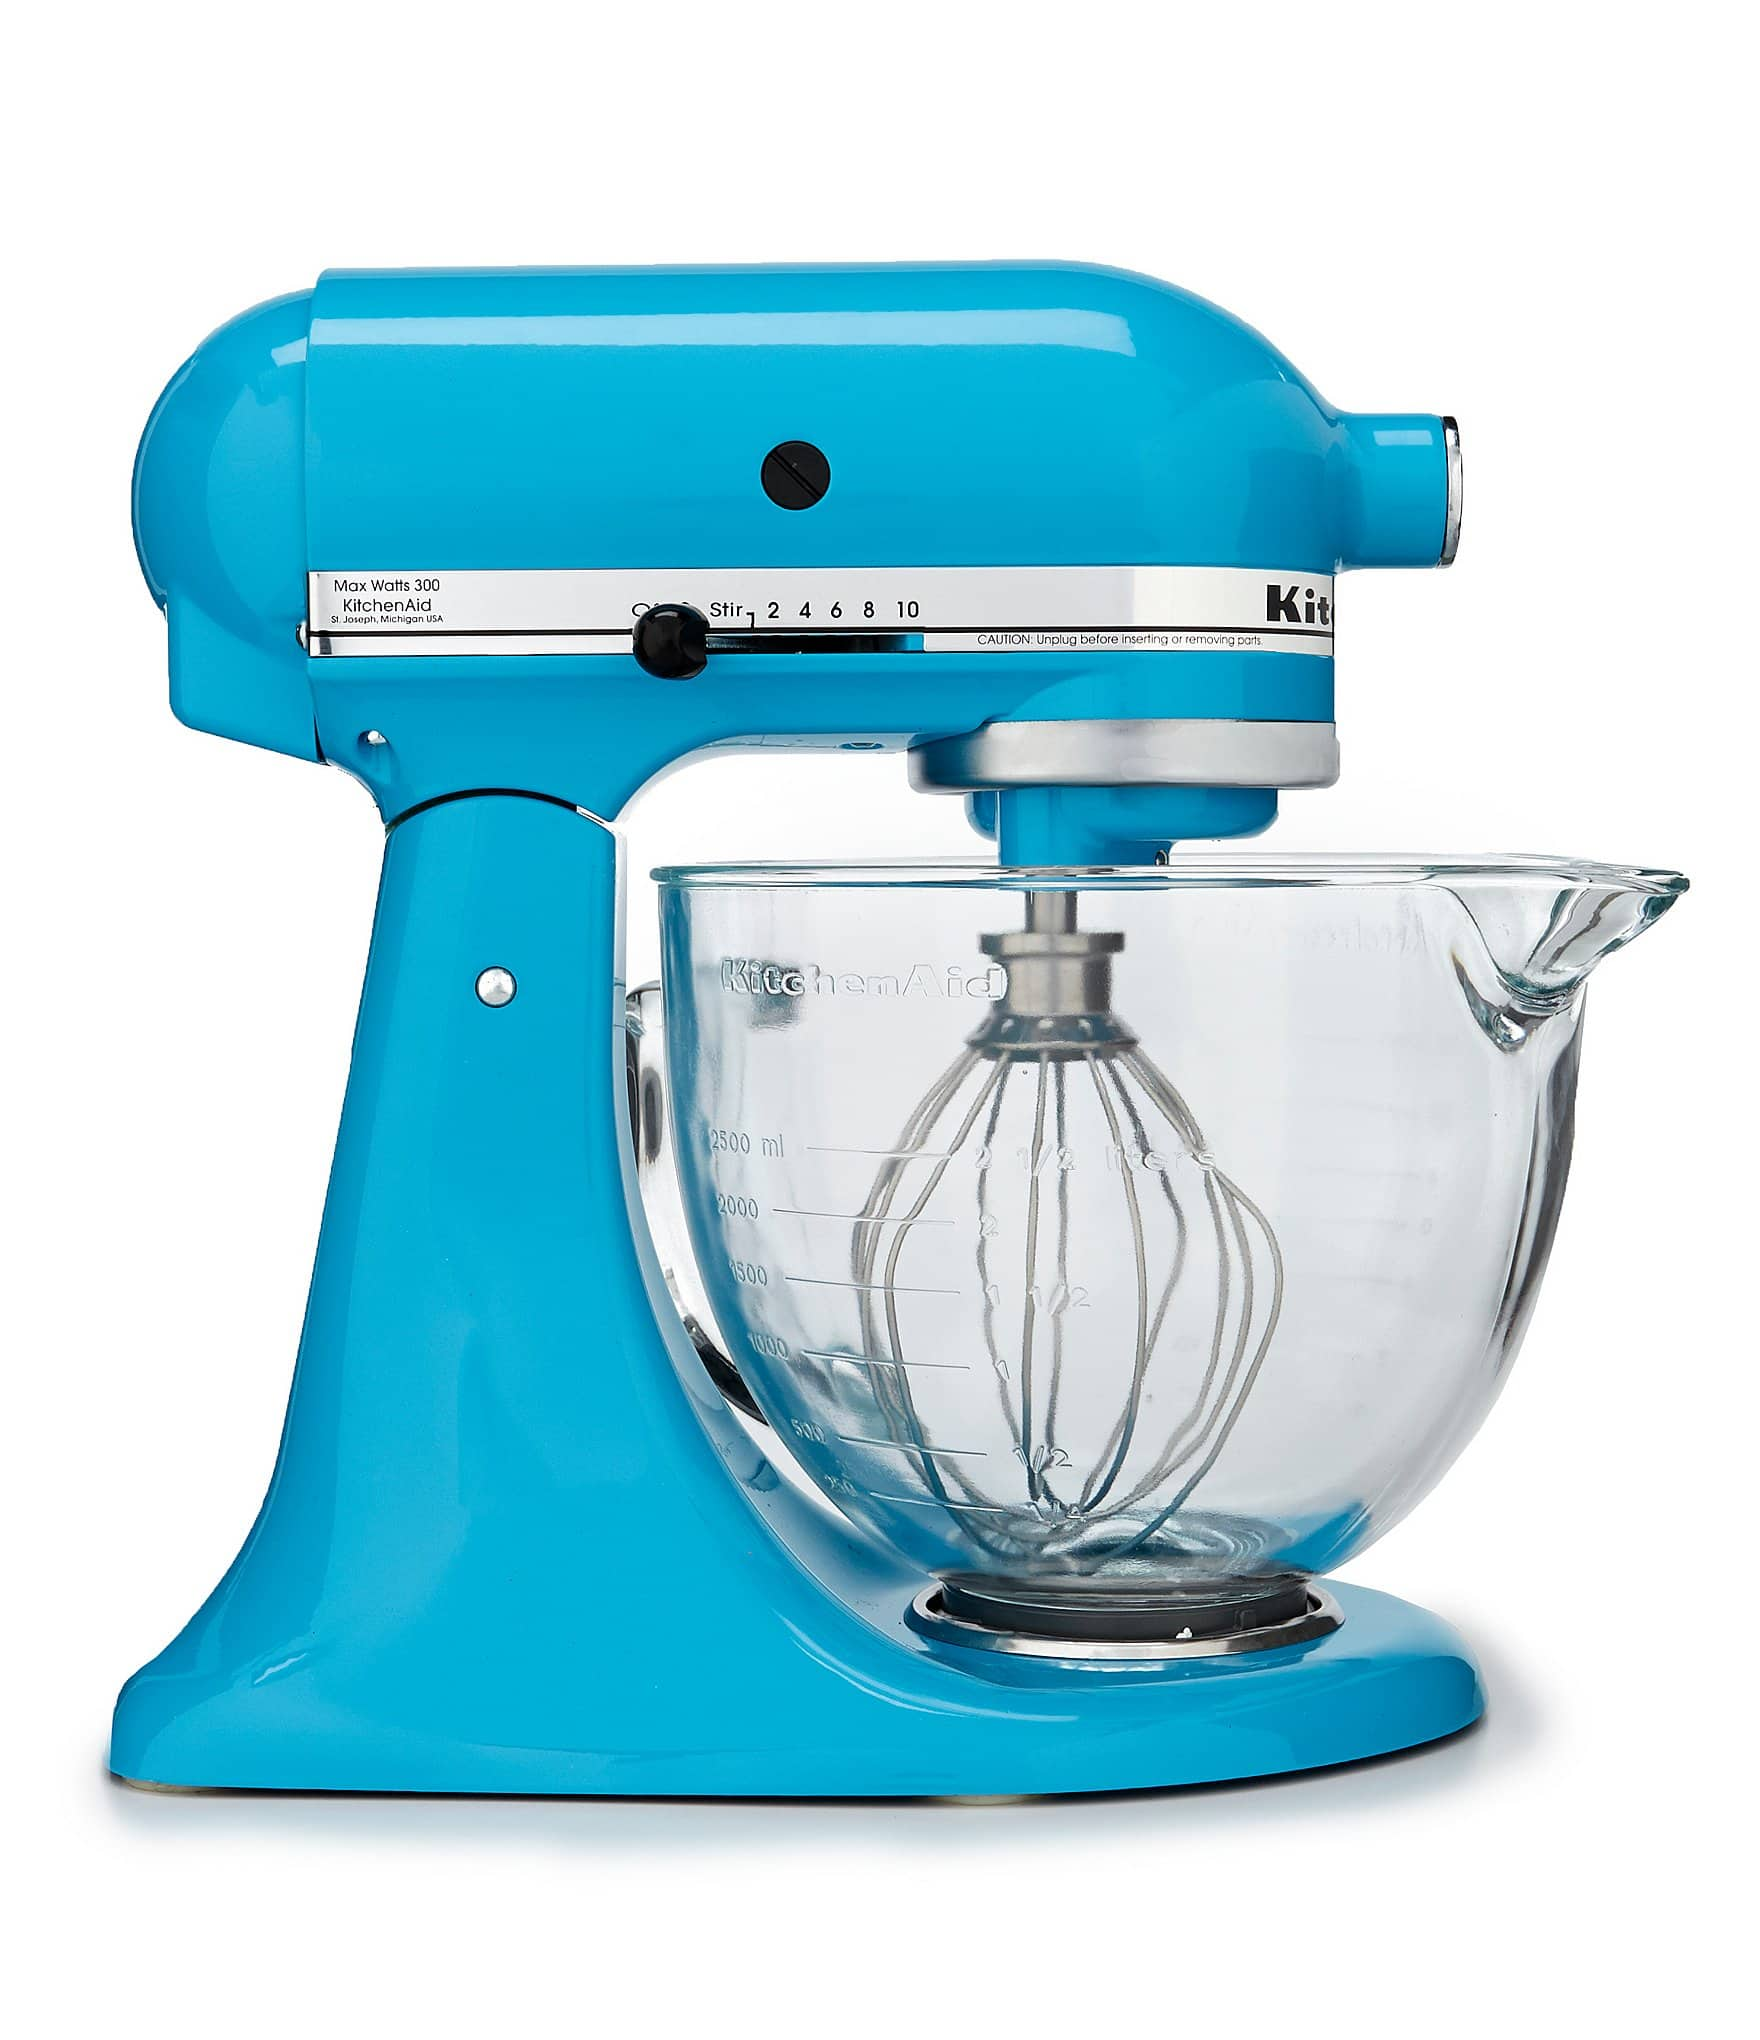 KitchenAid 5-Quart Tilt-Head Stand Mixer with Glass Bowl $120 ...